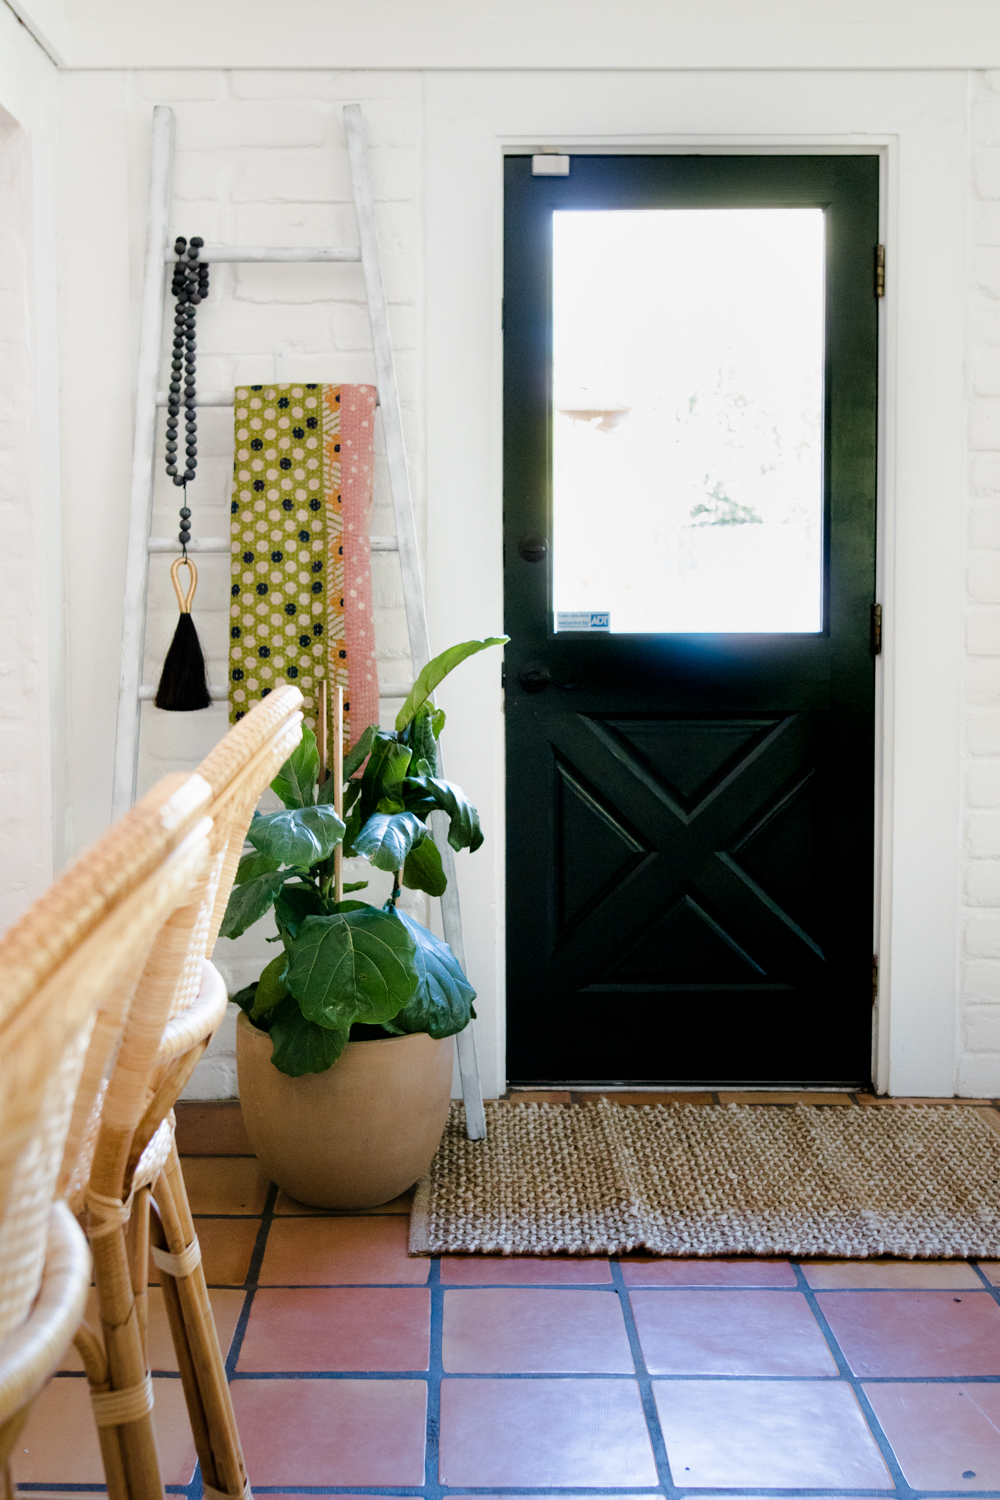 10 Entryway Plants That'll Make You Happy to Be Home | Hunker